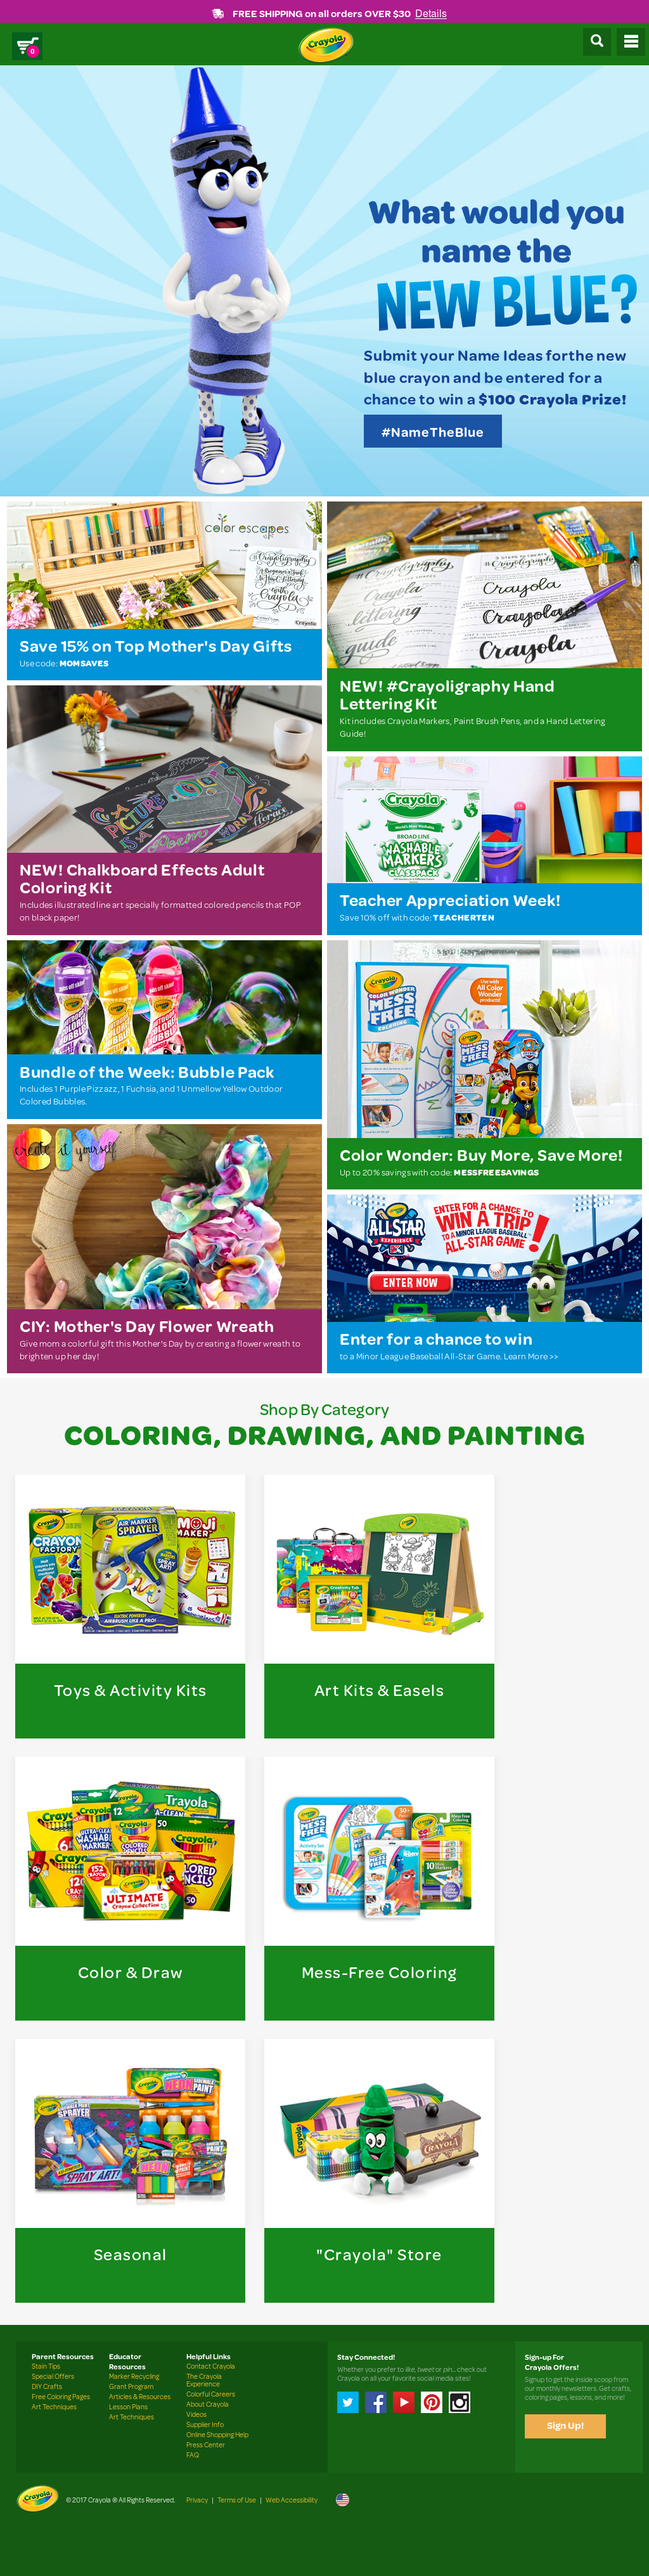 Crayola Competitors, Revenue and Employees - Owler Company Profile